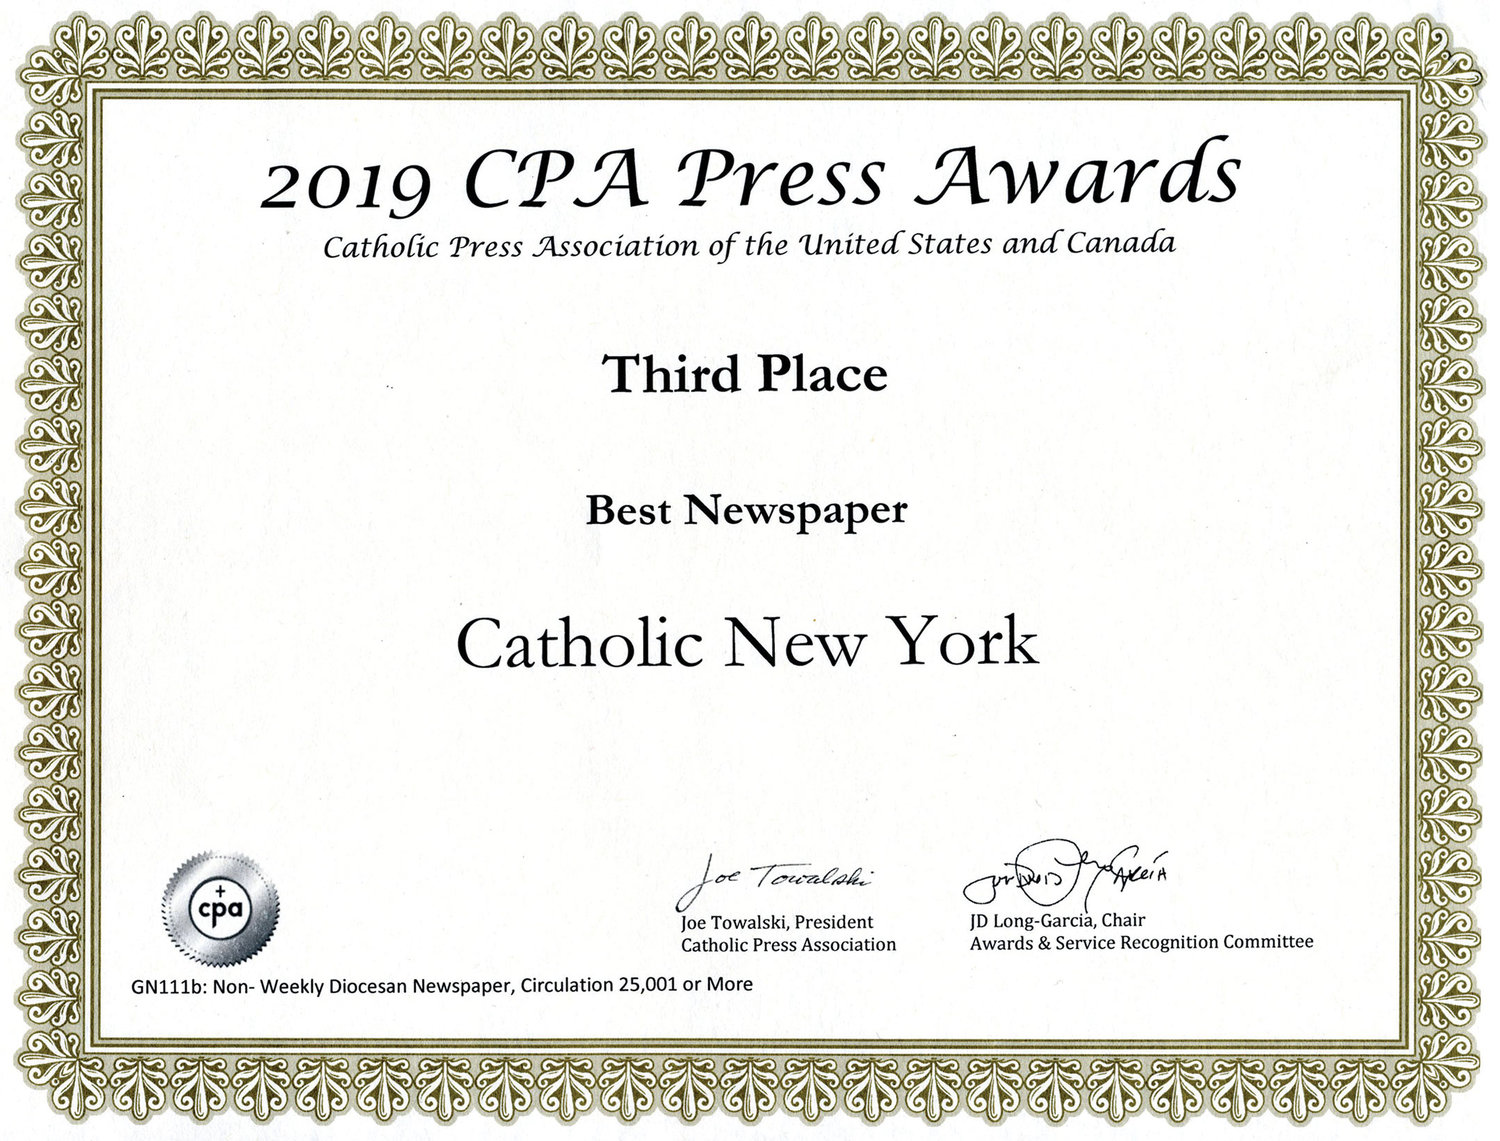 Catholic New York placed third in the Newspaper of the Year category of the annual Catholic Press Association Awards competition.